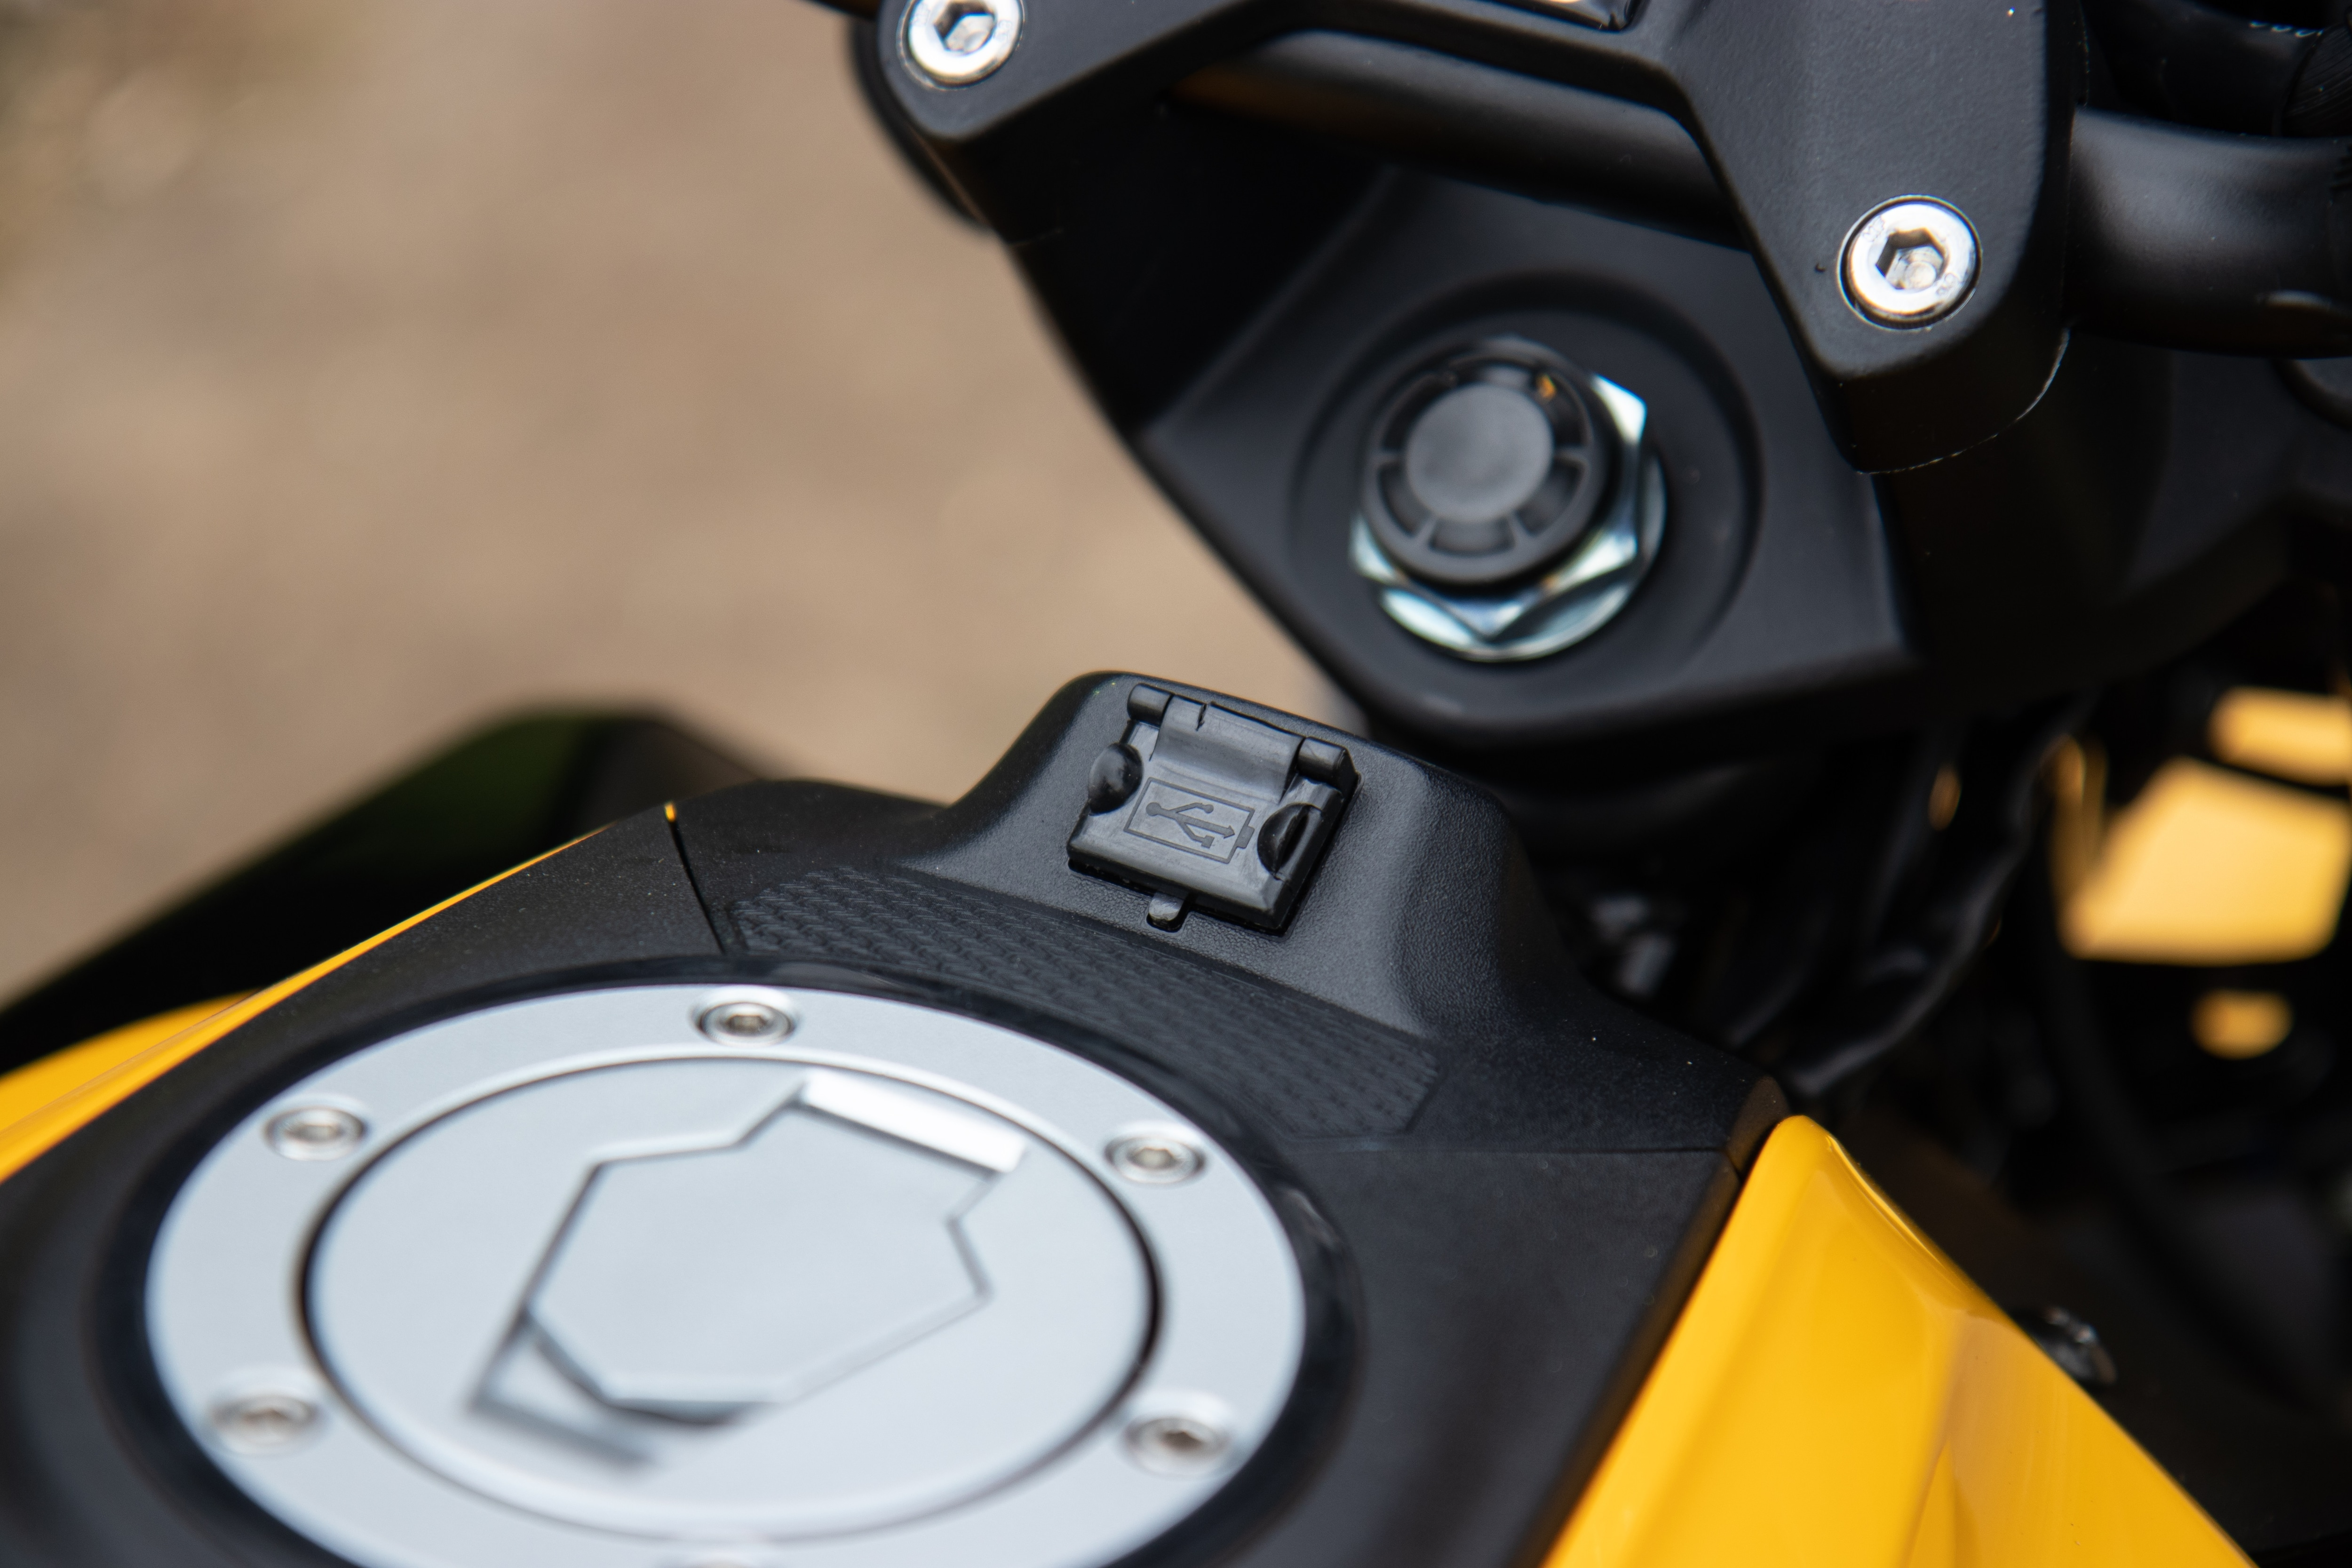 TVS has given the Raider an electric start feature and also optional USB that is placed very conveniently near the fuel tank lid.